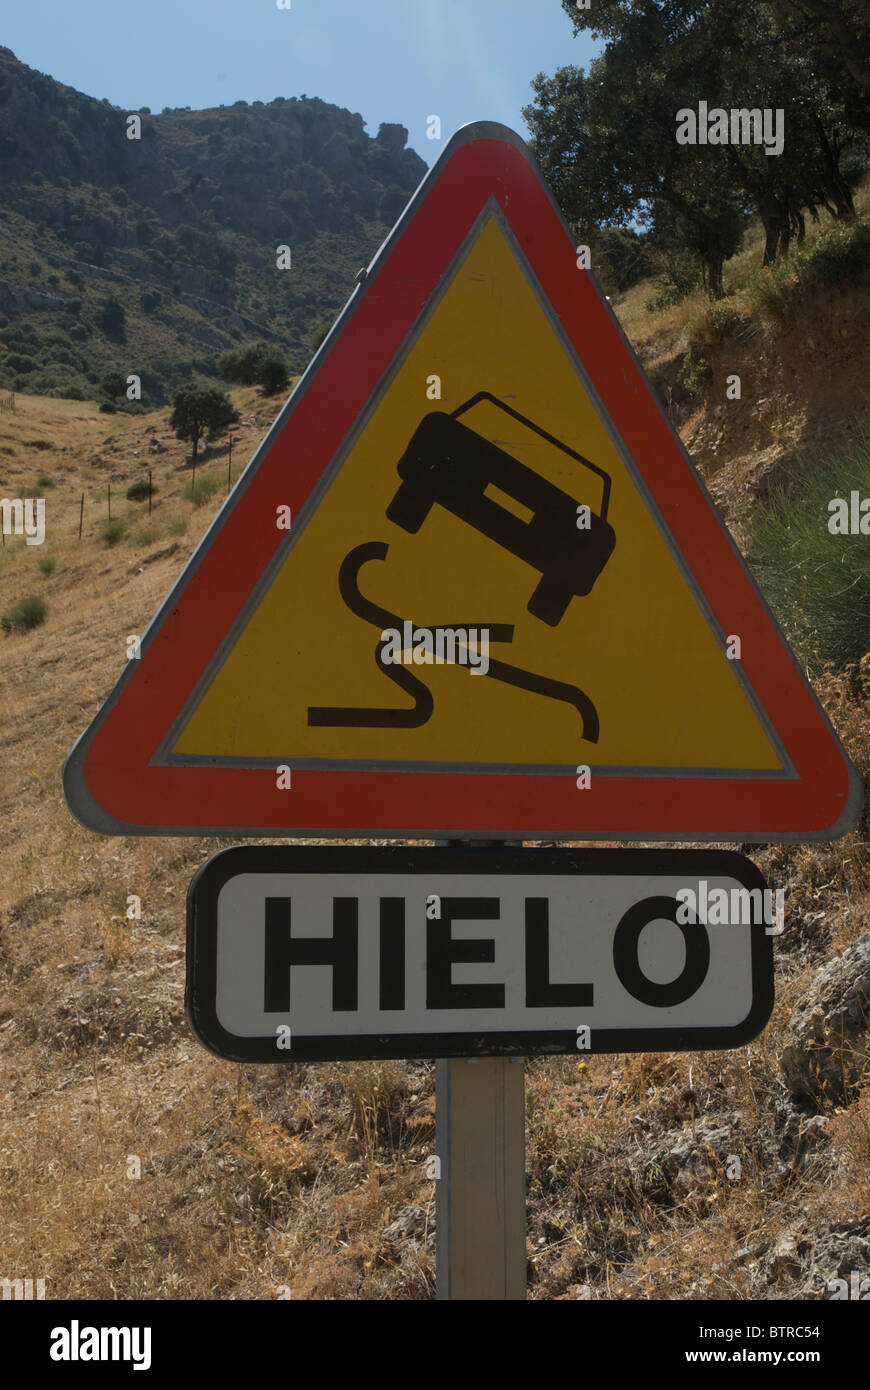 Slippery road sign, Spain - Stock Image